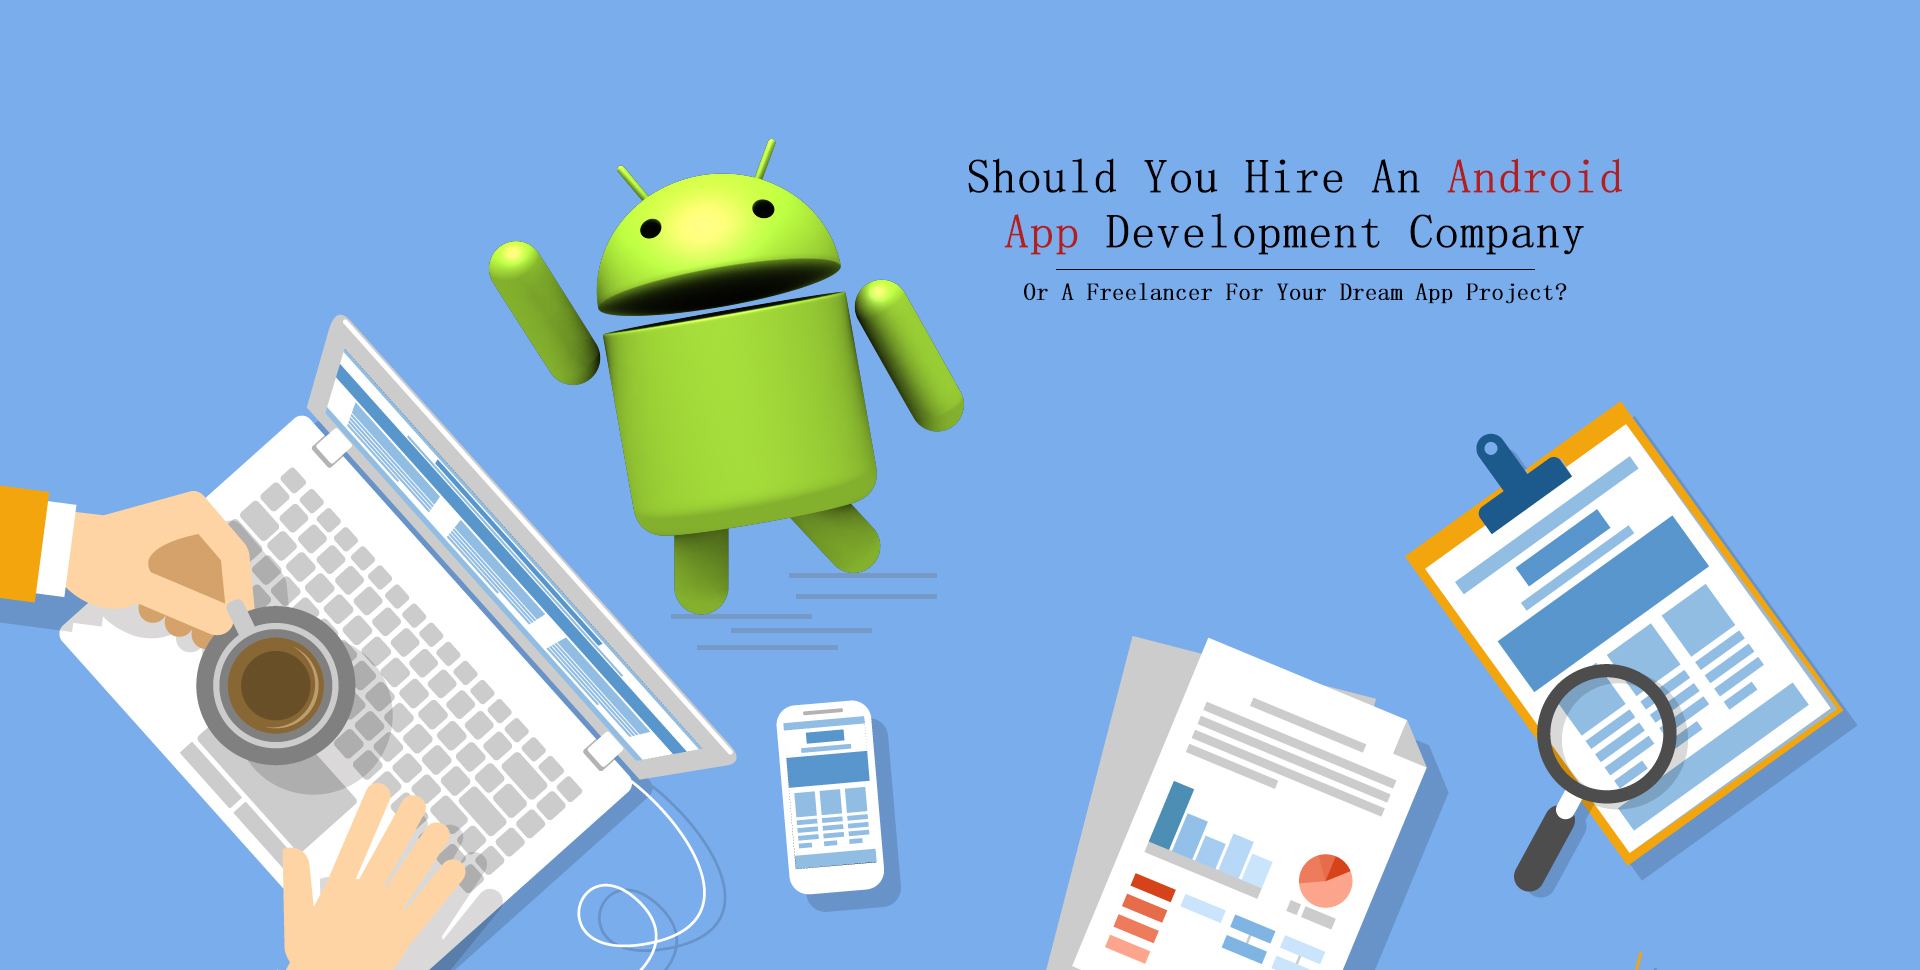 Should You Hire An Android App Development Company Or A Freelancer For Your Dream App Project - Semidot Infotech